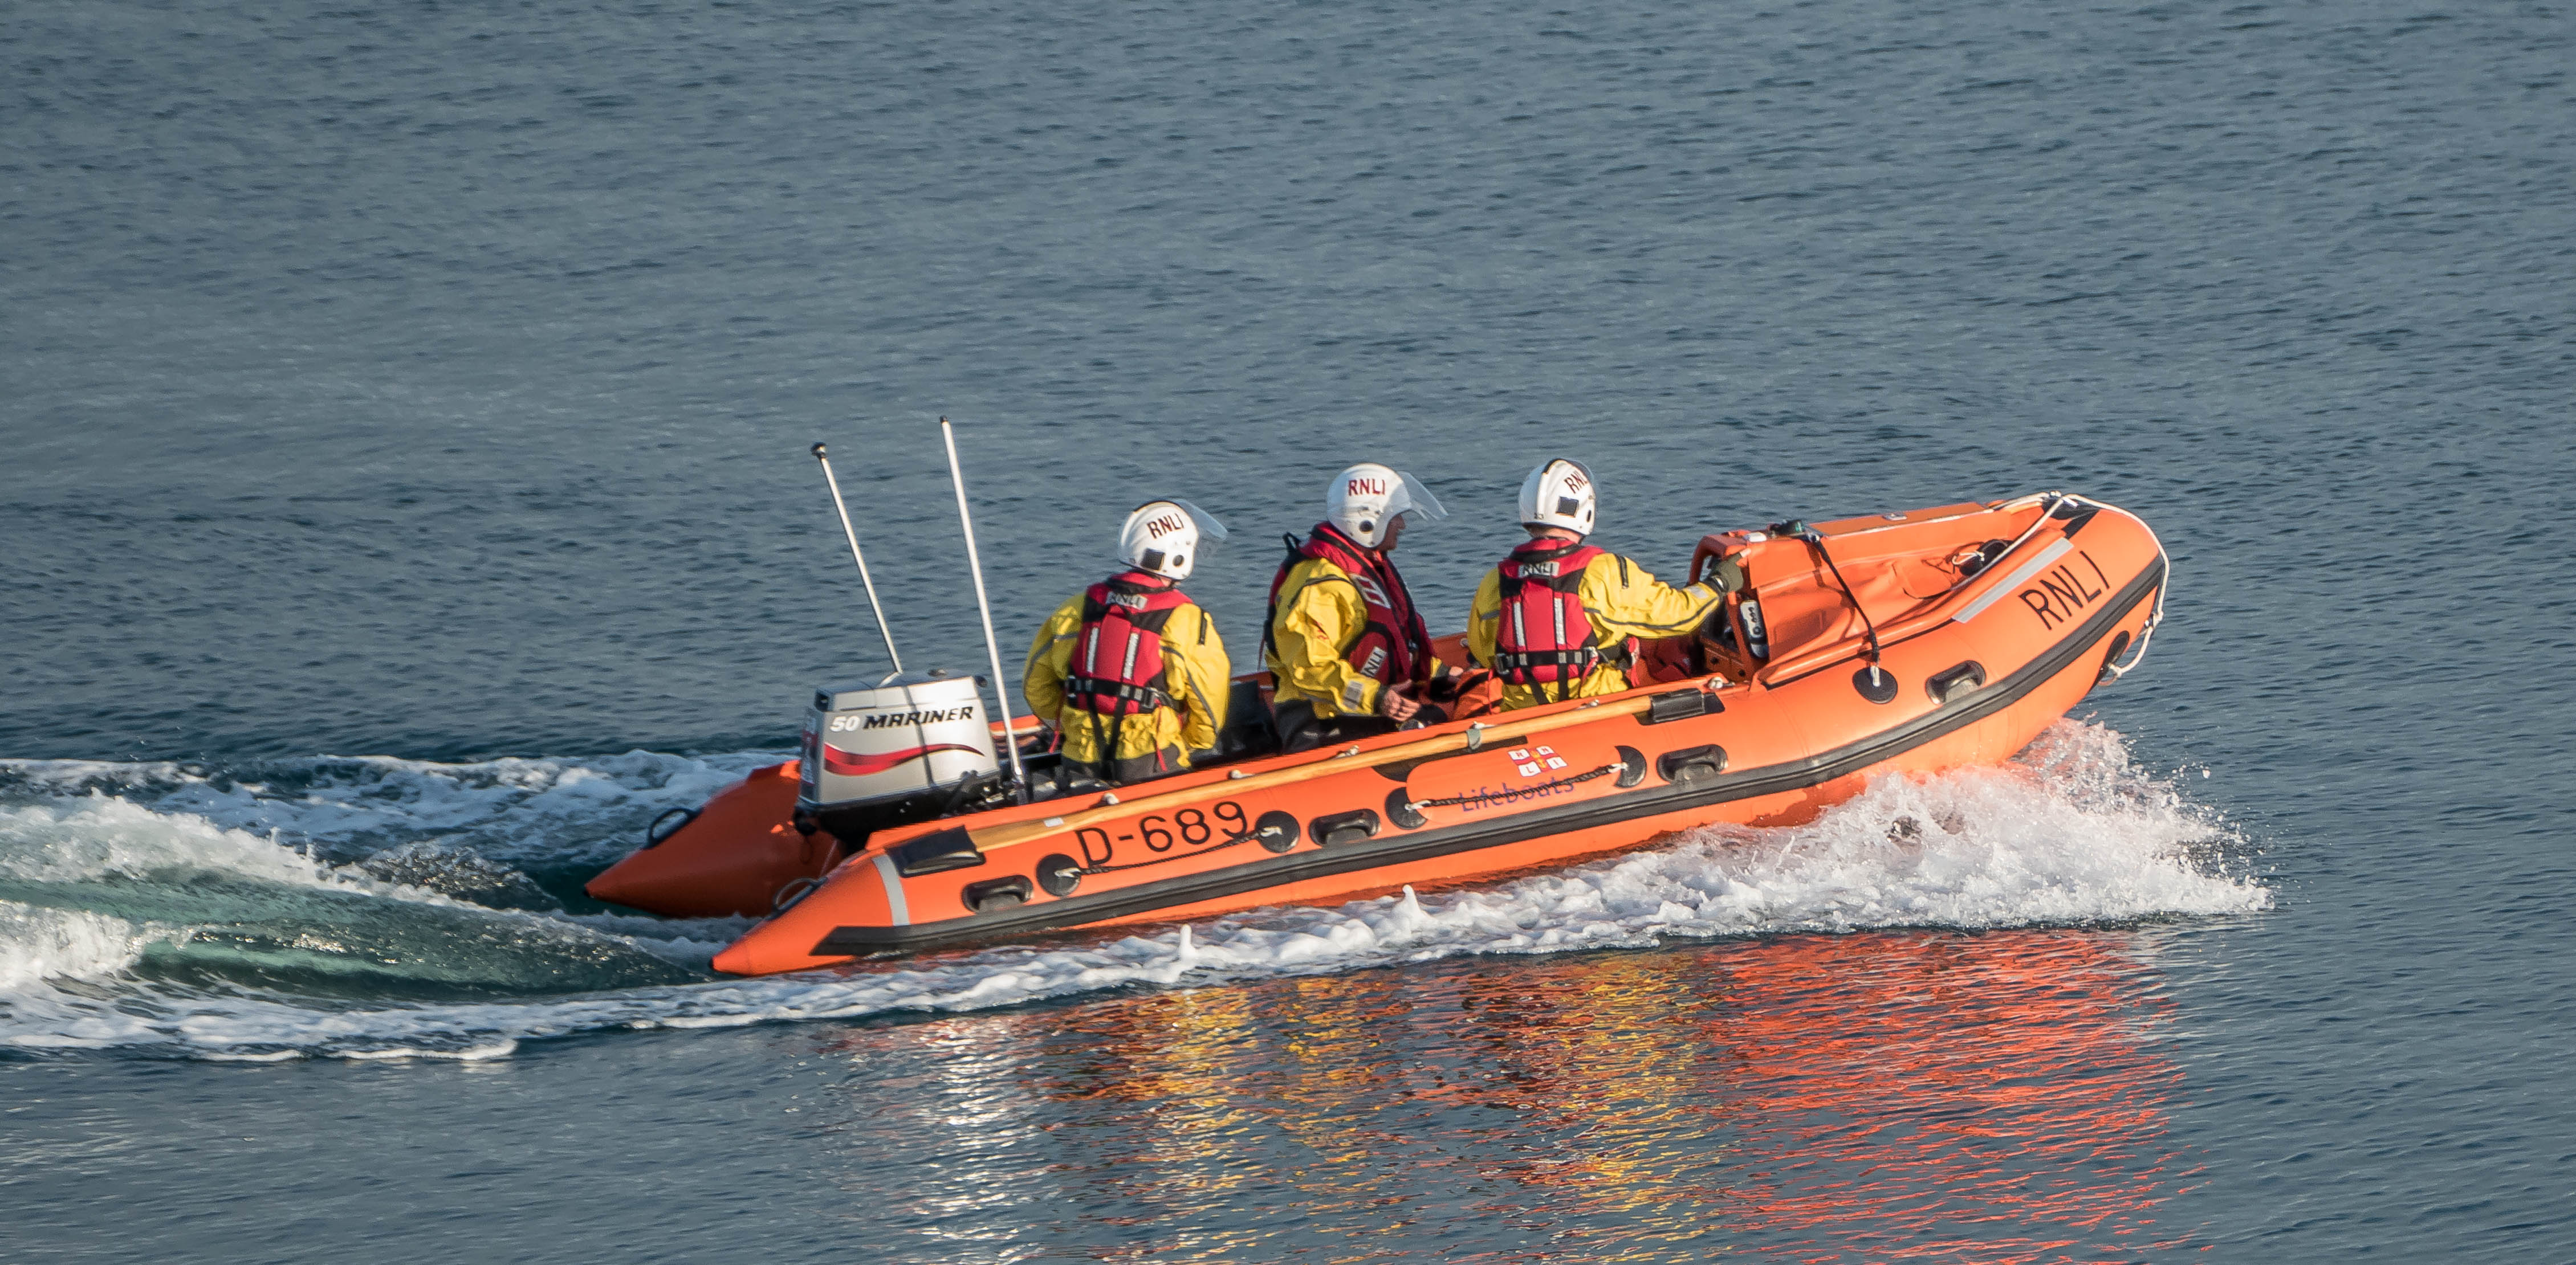 Moelfre inshore lifeboat on the water